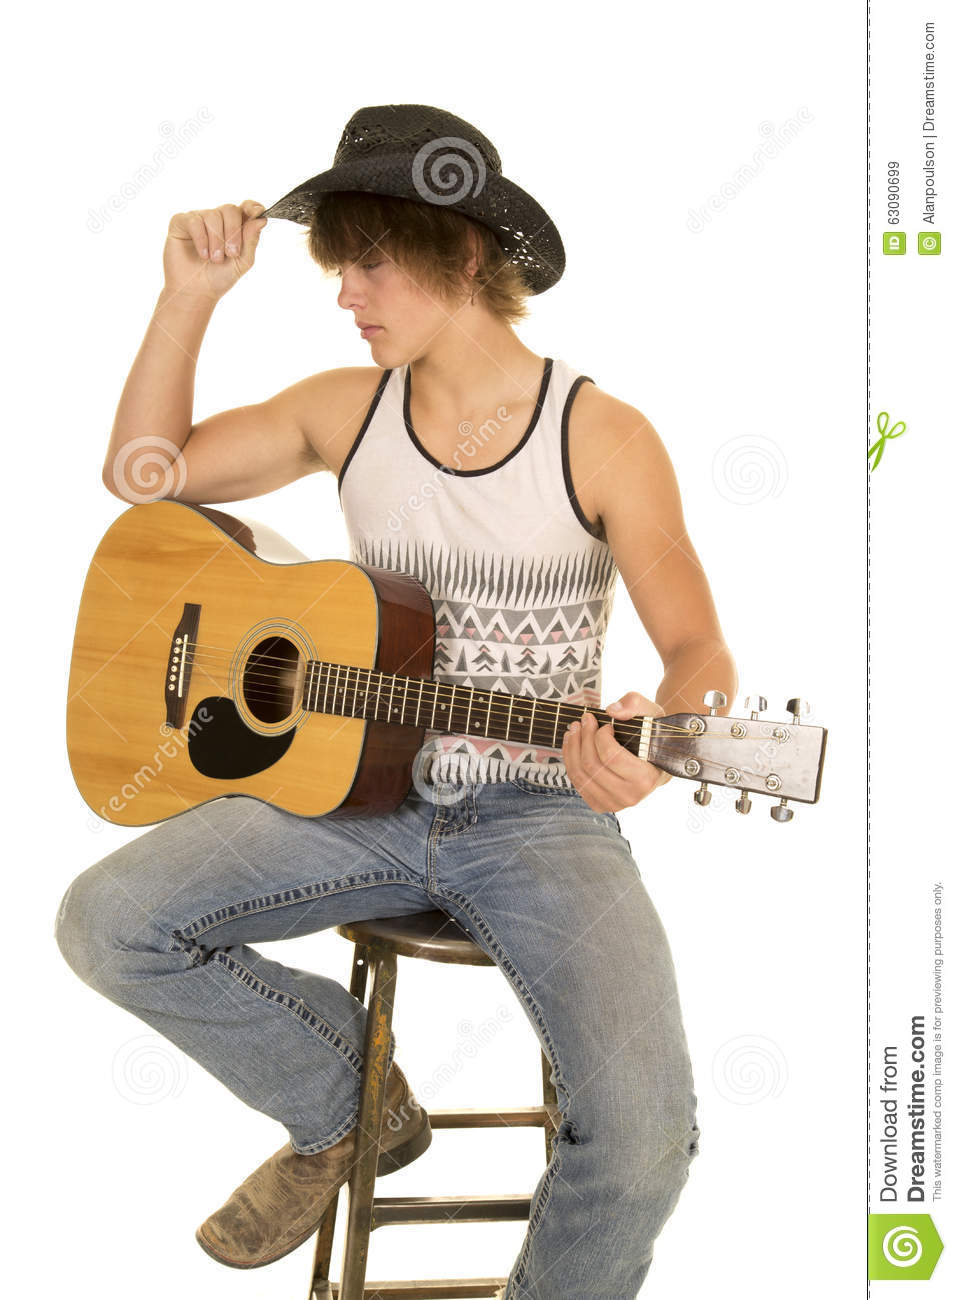 Royalty-Free Stock Photo. Download Young Man Playing A Guitar ...  sc 1 st  Dreamstime.com & Young Man Playing A Guitar With Cowboy Hat Sit Stock Photo - Image ... islam-shia.org